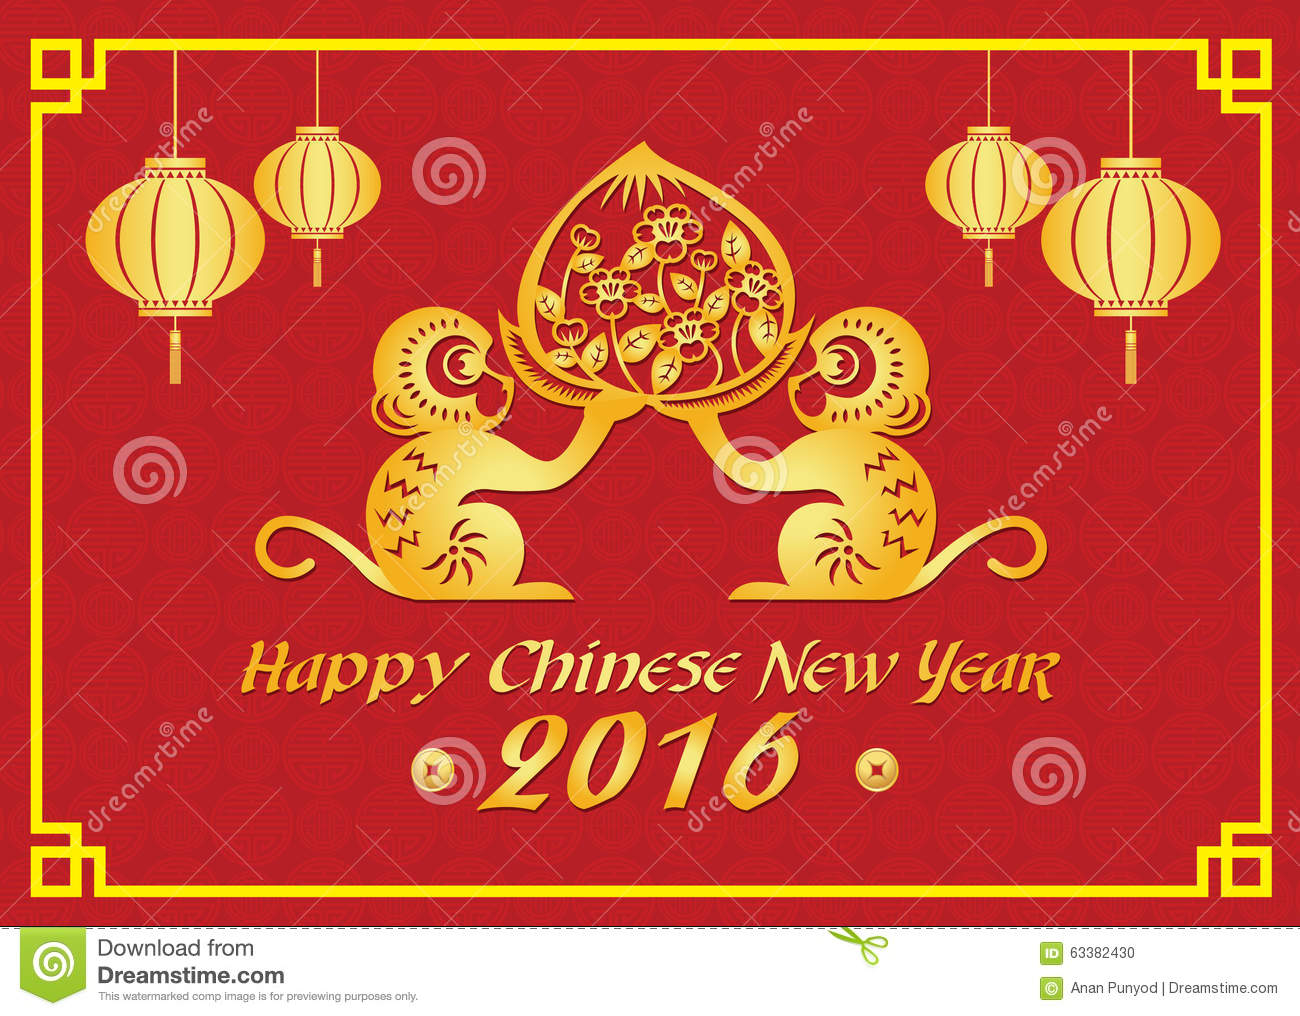 Happy Chinese New Year 2016 Card Is Lanterns ,Gold Monkey And ...